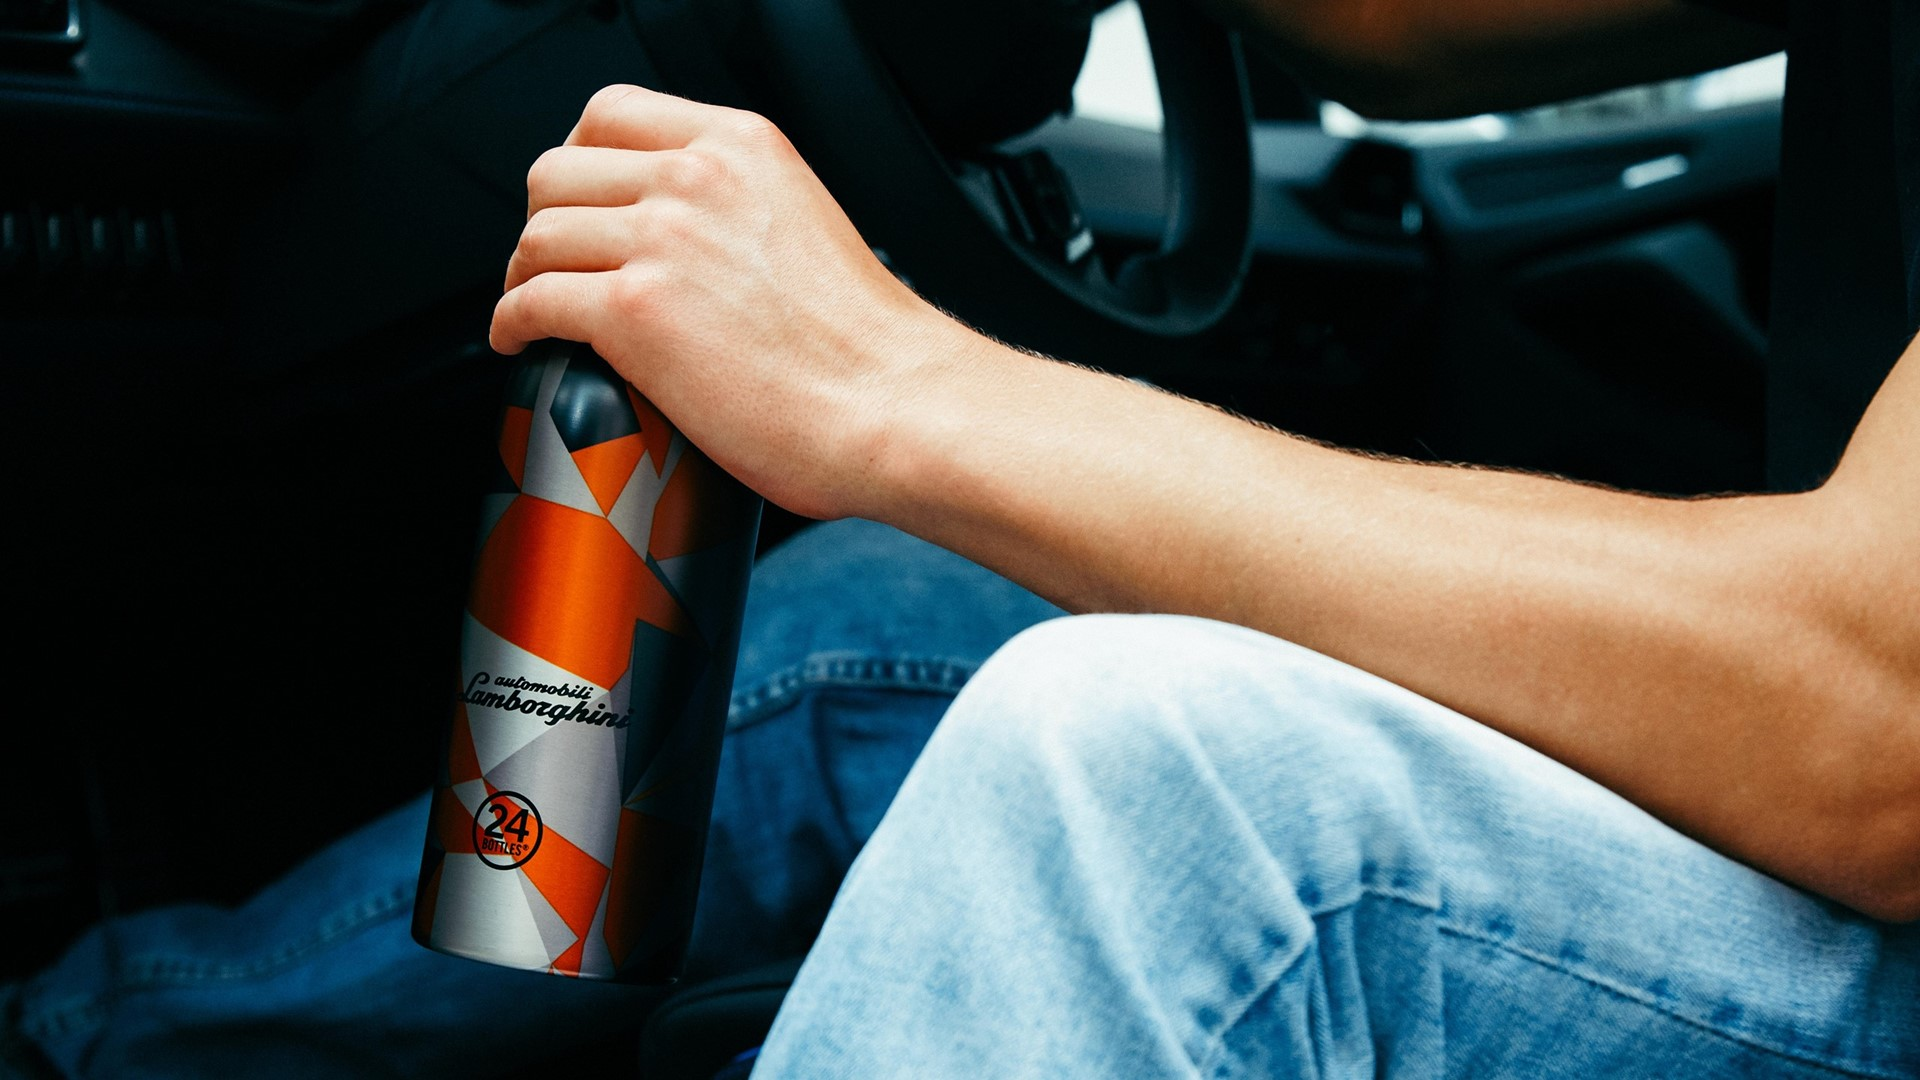 Exclusive special edition Clima Bottle from 24Bottles and Automobili Lamborghini - Image 4